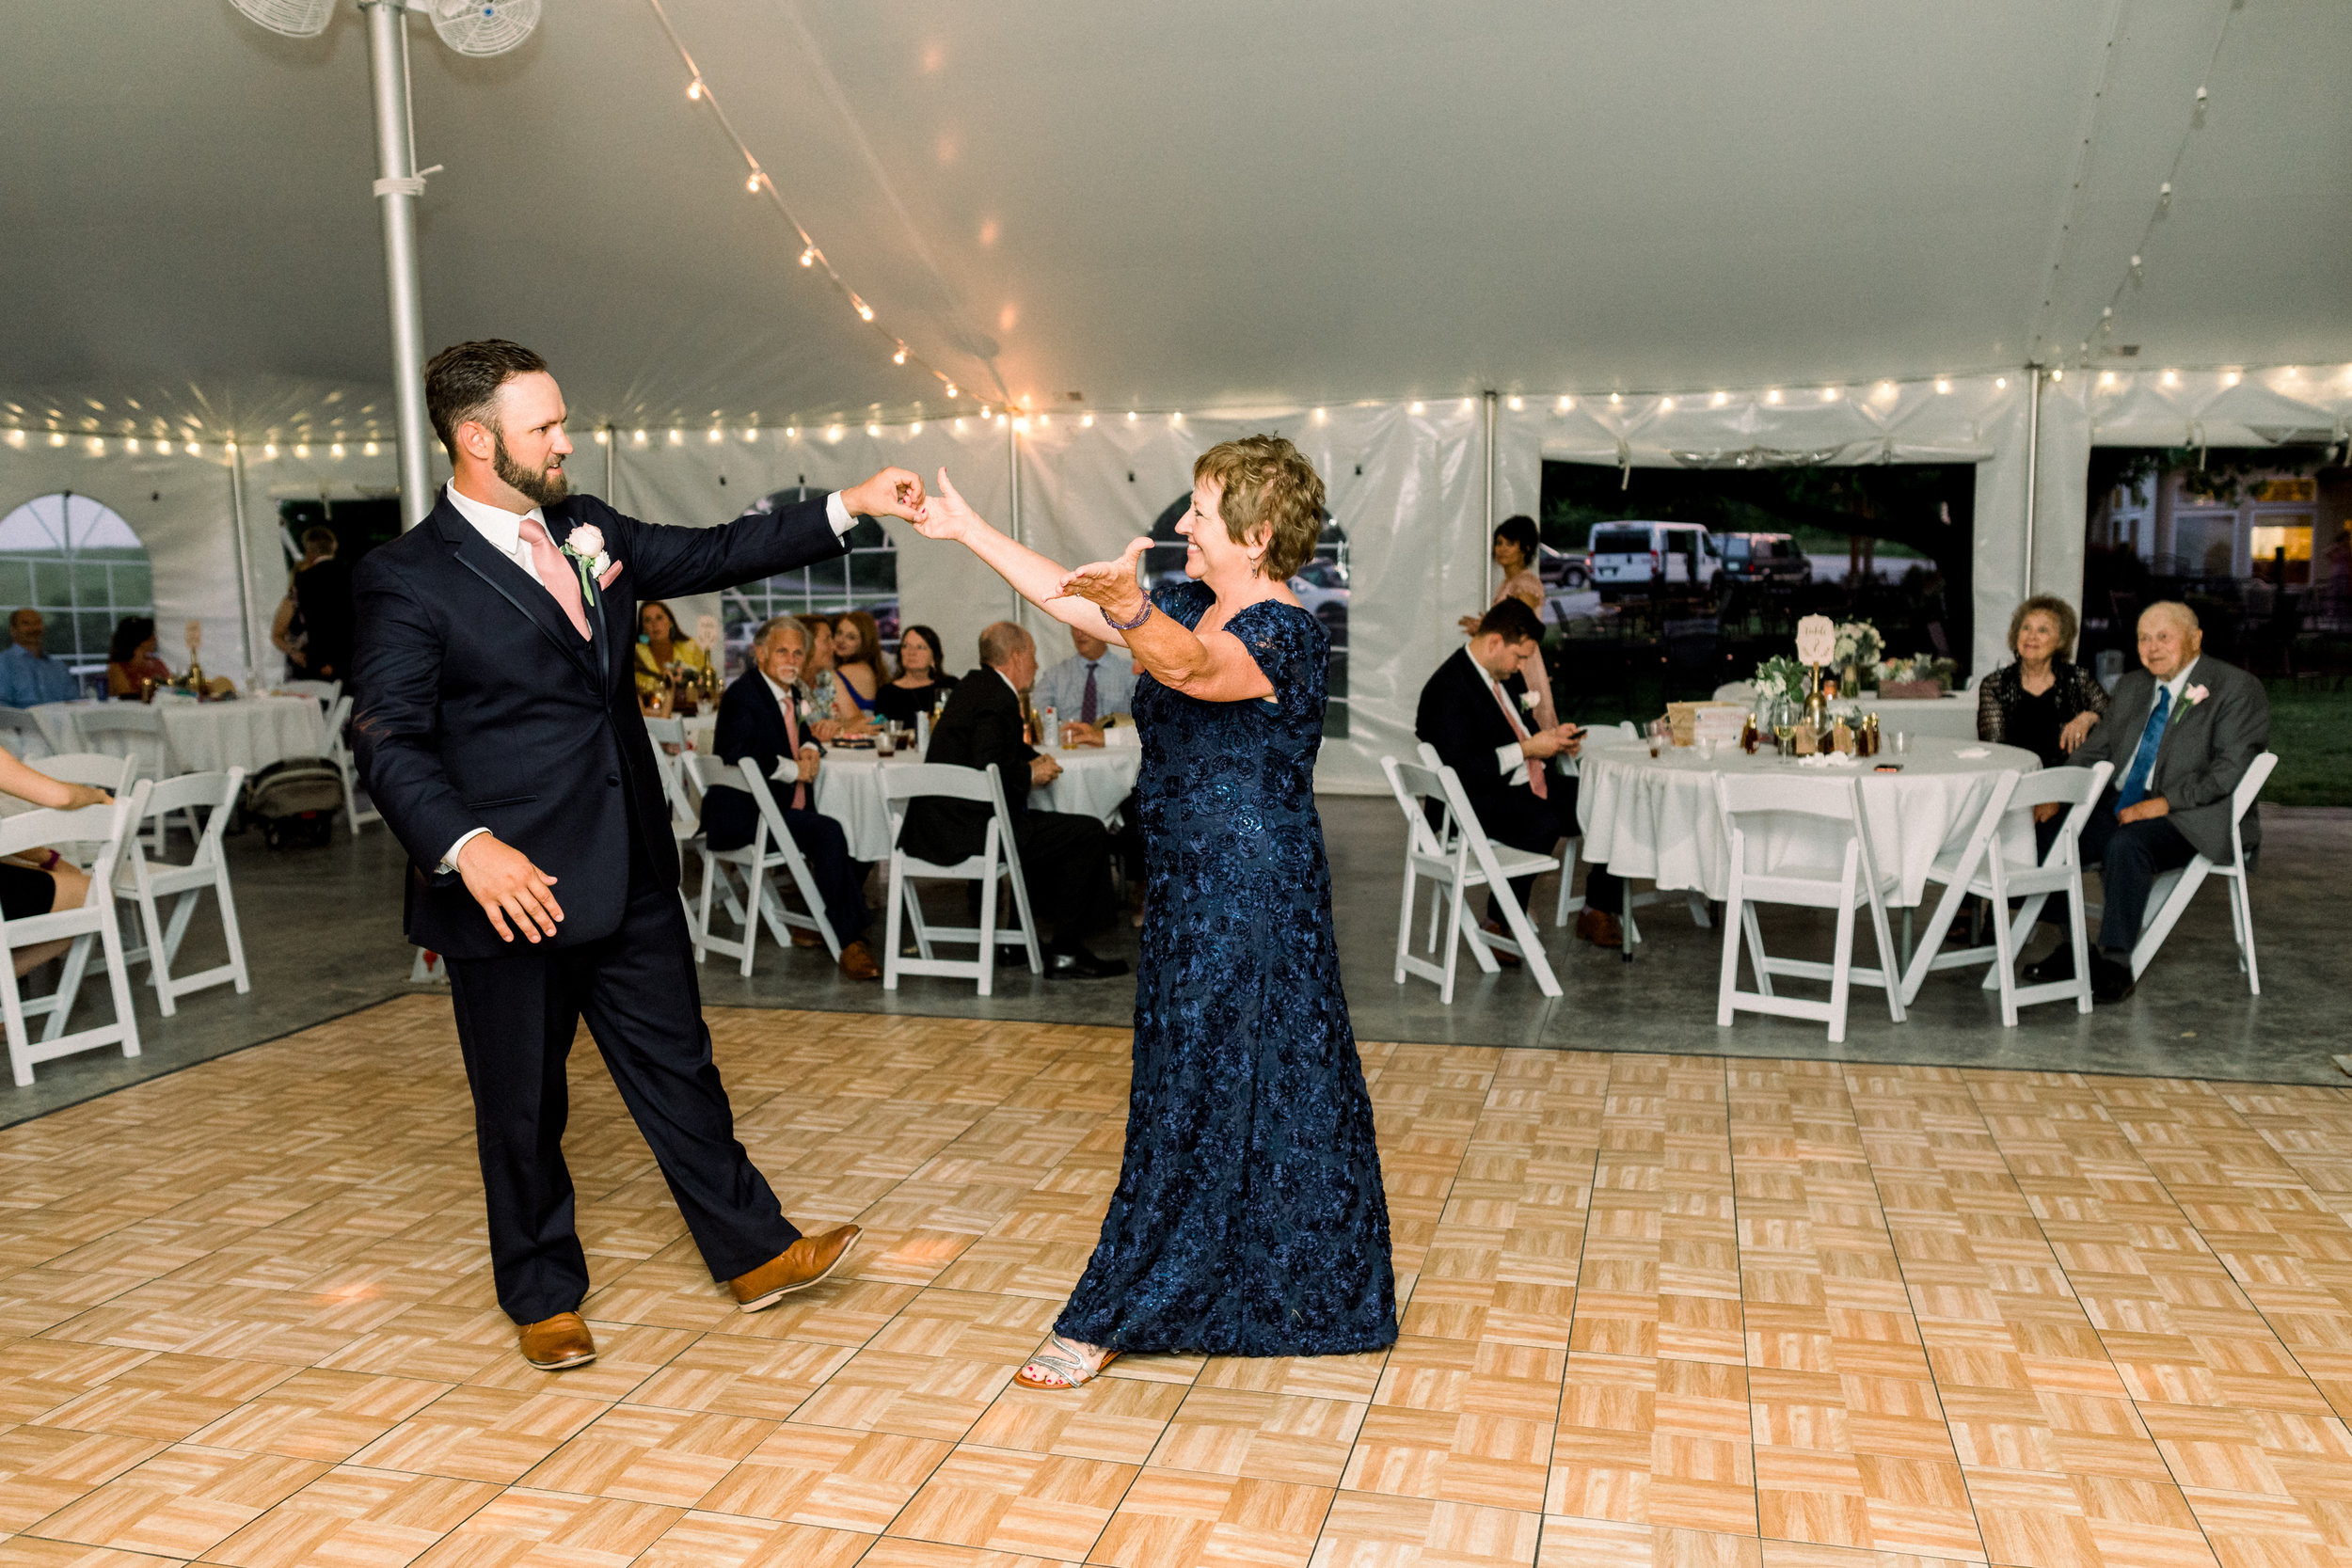 Molly + Dan wedding 6-7-19 (779 of 916).jpg